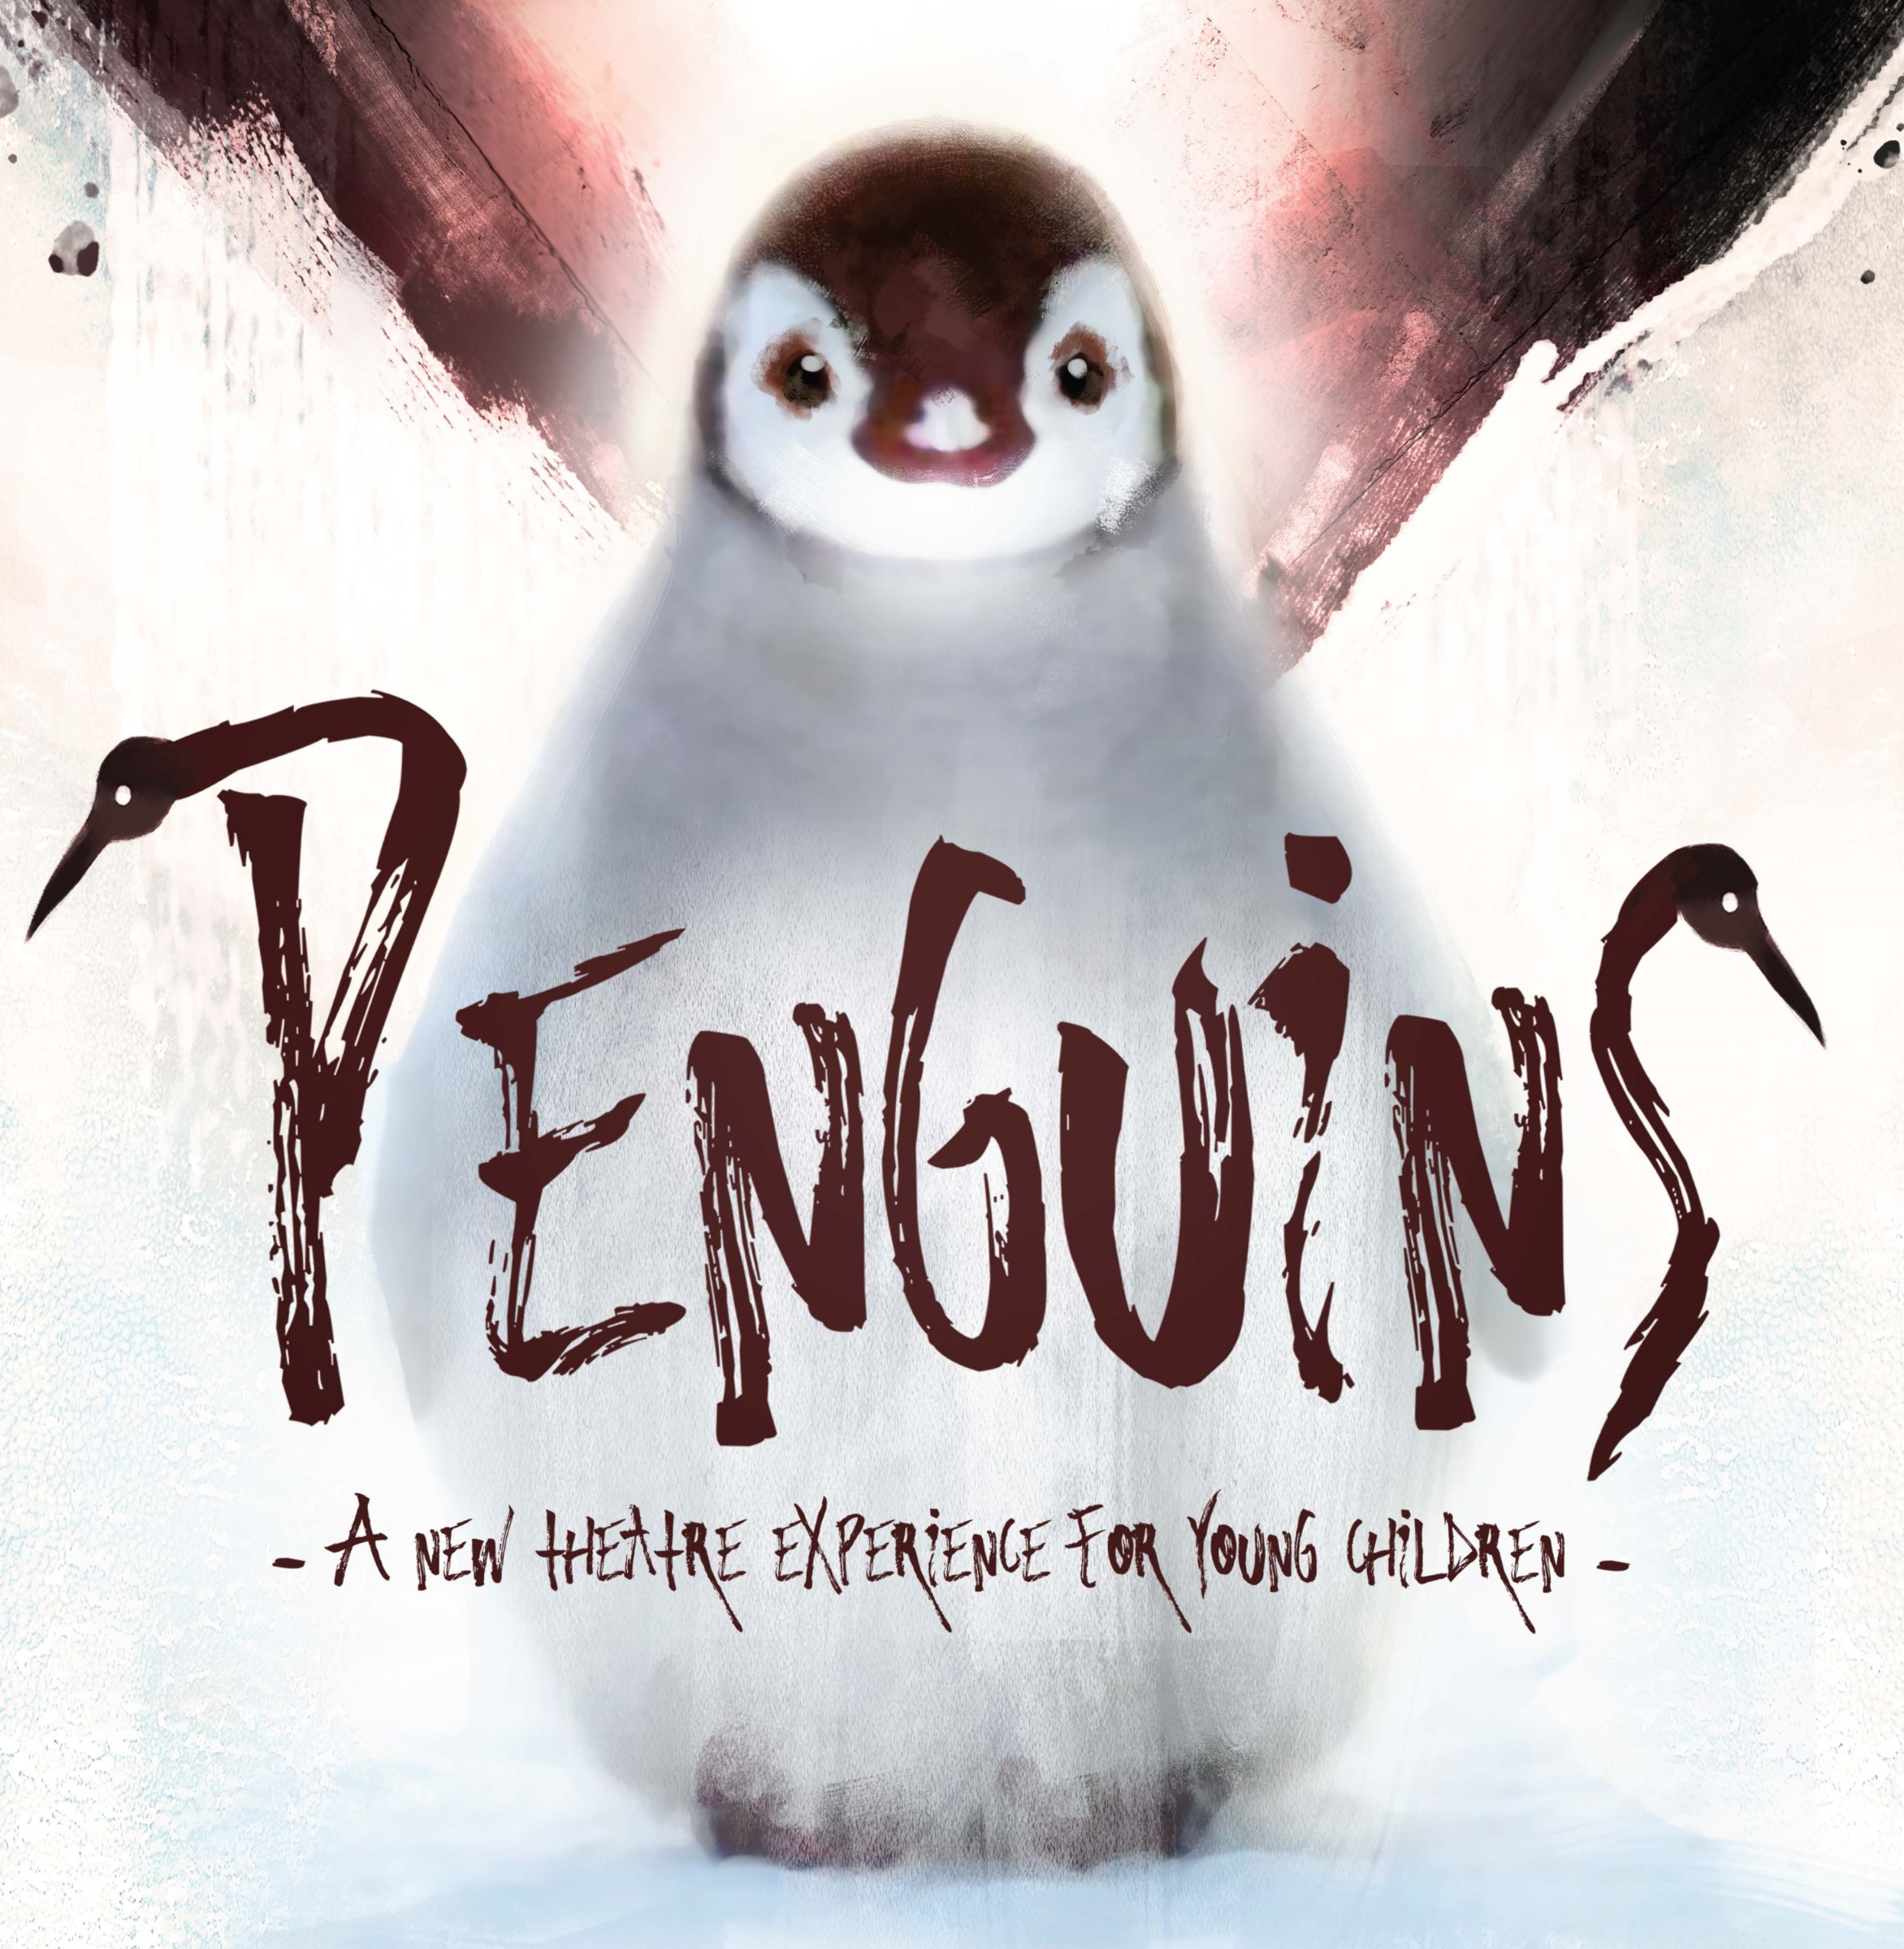 Penguins presented by Birmingham Repertory Theatre